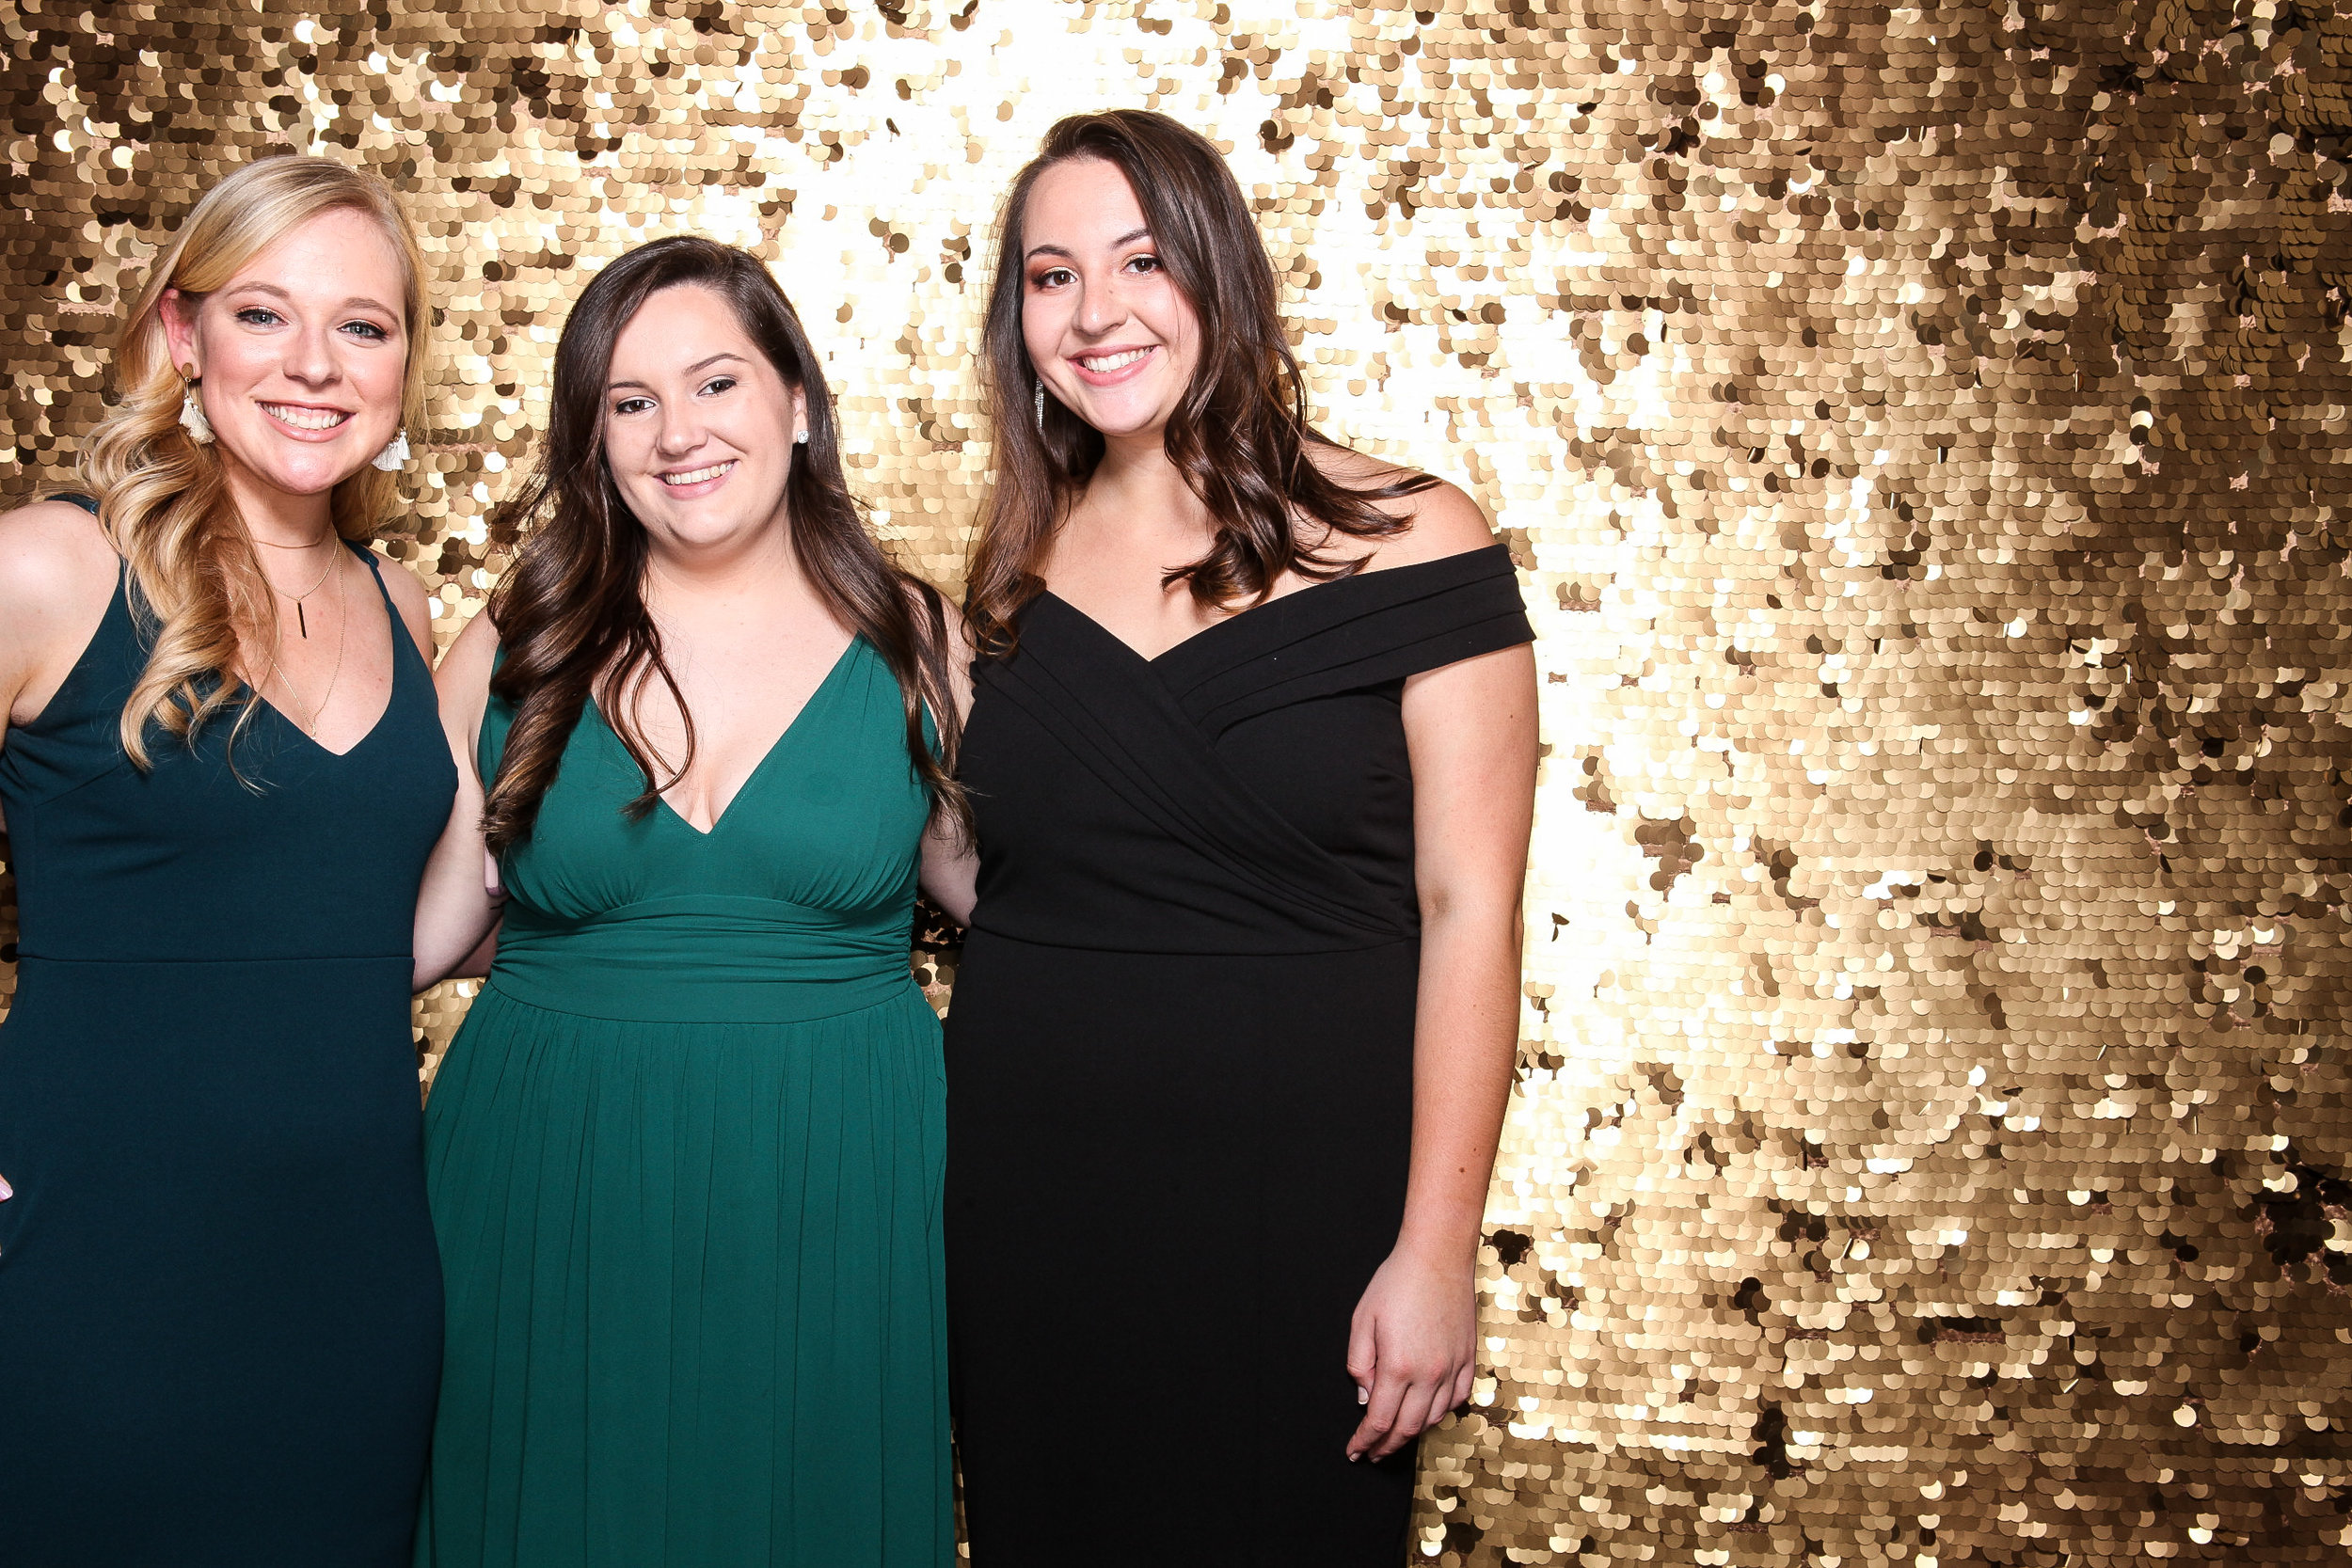 20190503_Adelphi_Senior_Formal-060.jpg